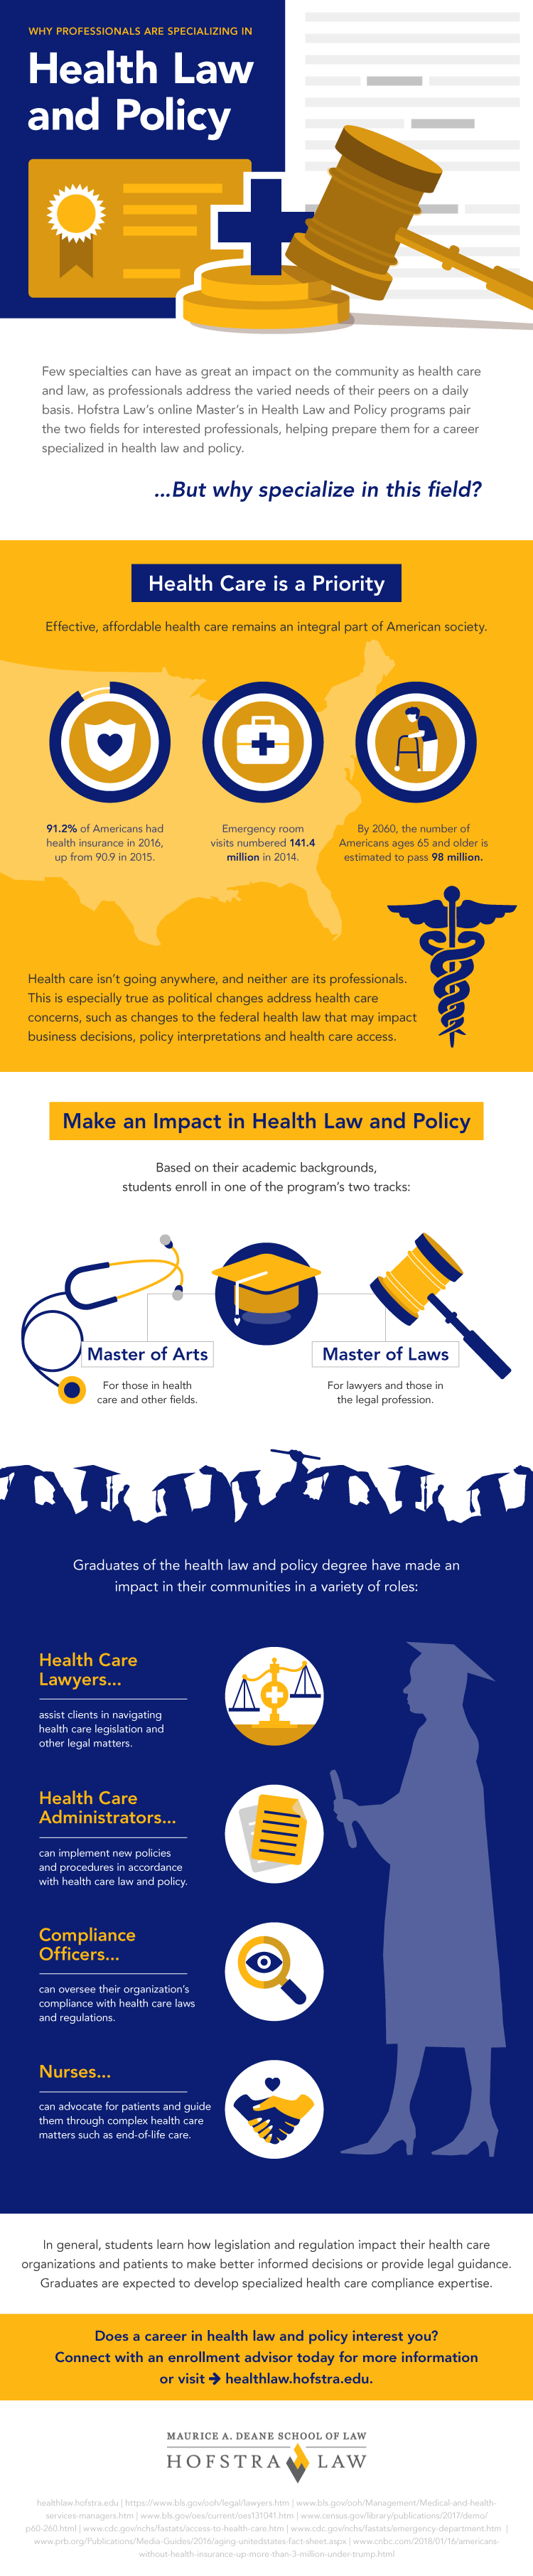 Infographic on why one should specialize in health law and policy at Hofstra Law